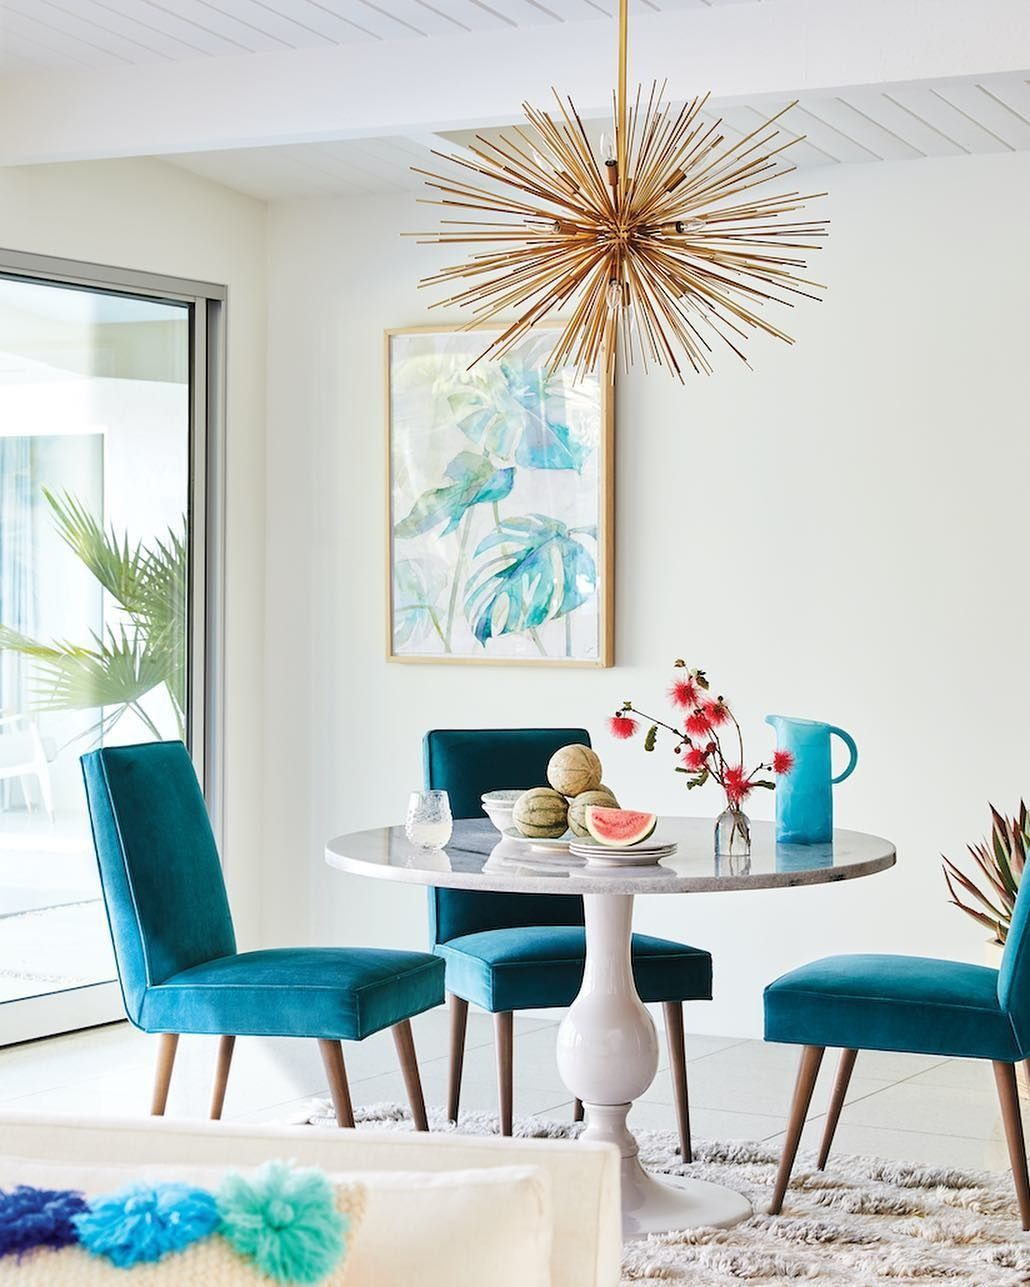 Teal Dining Room: Teal Dining Room Chairs And Gold Light Fixture